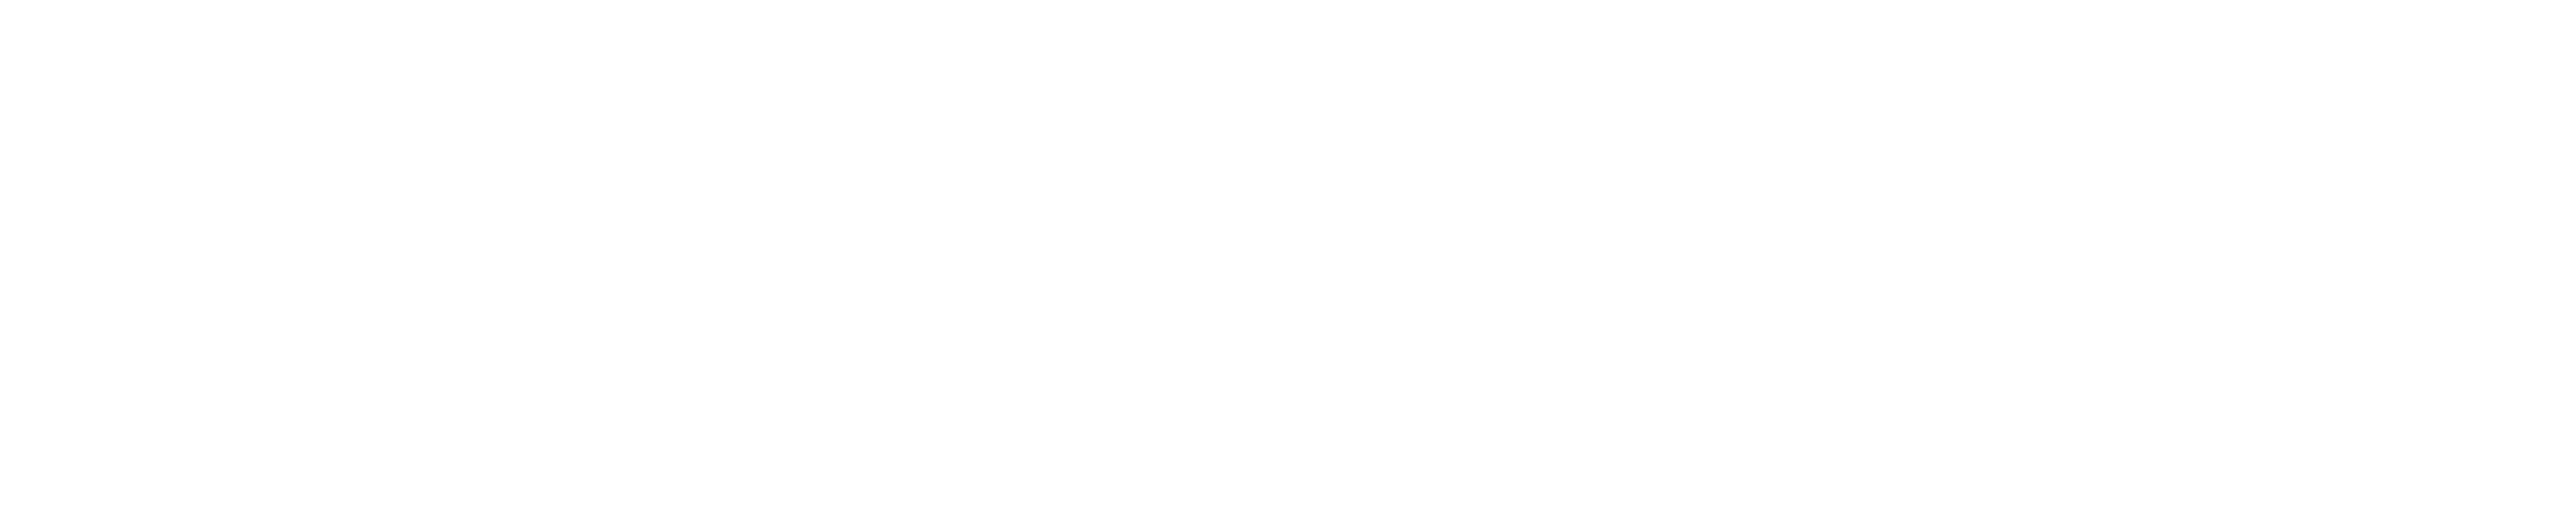 wilderness times logo